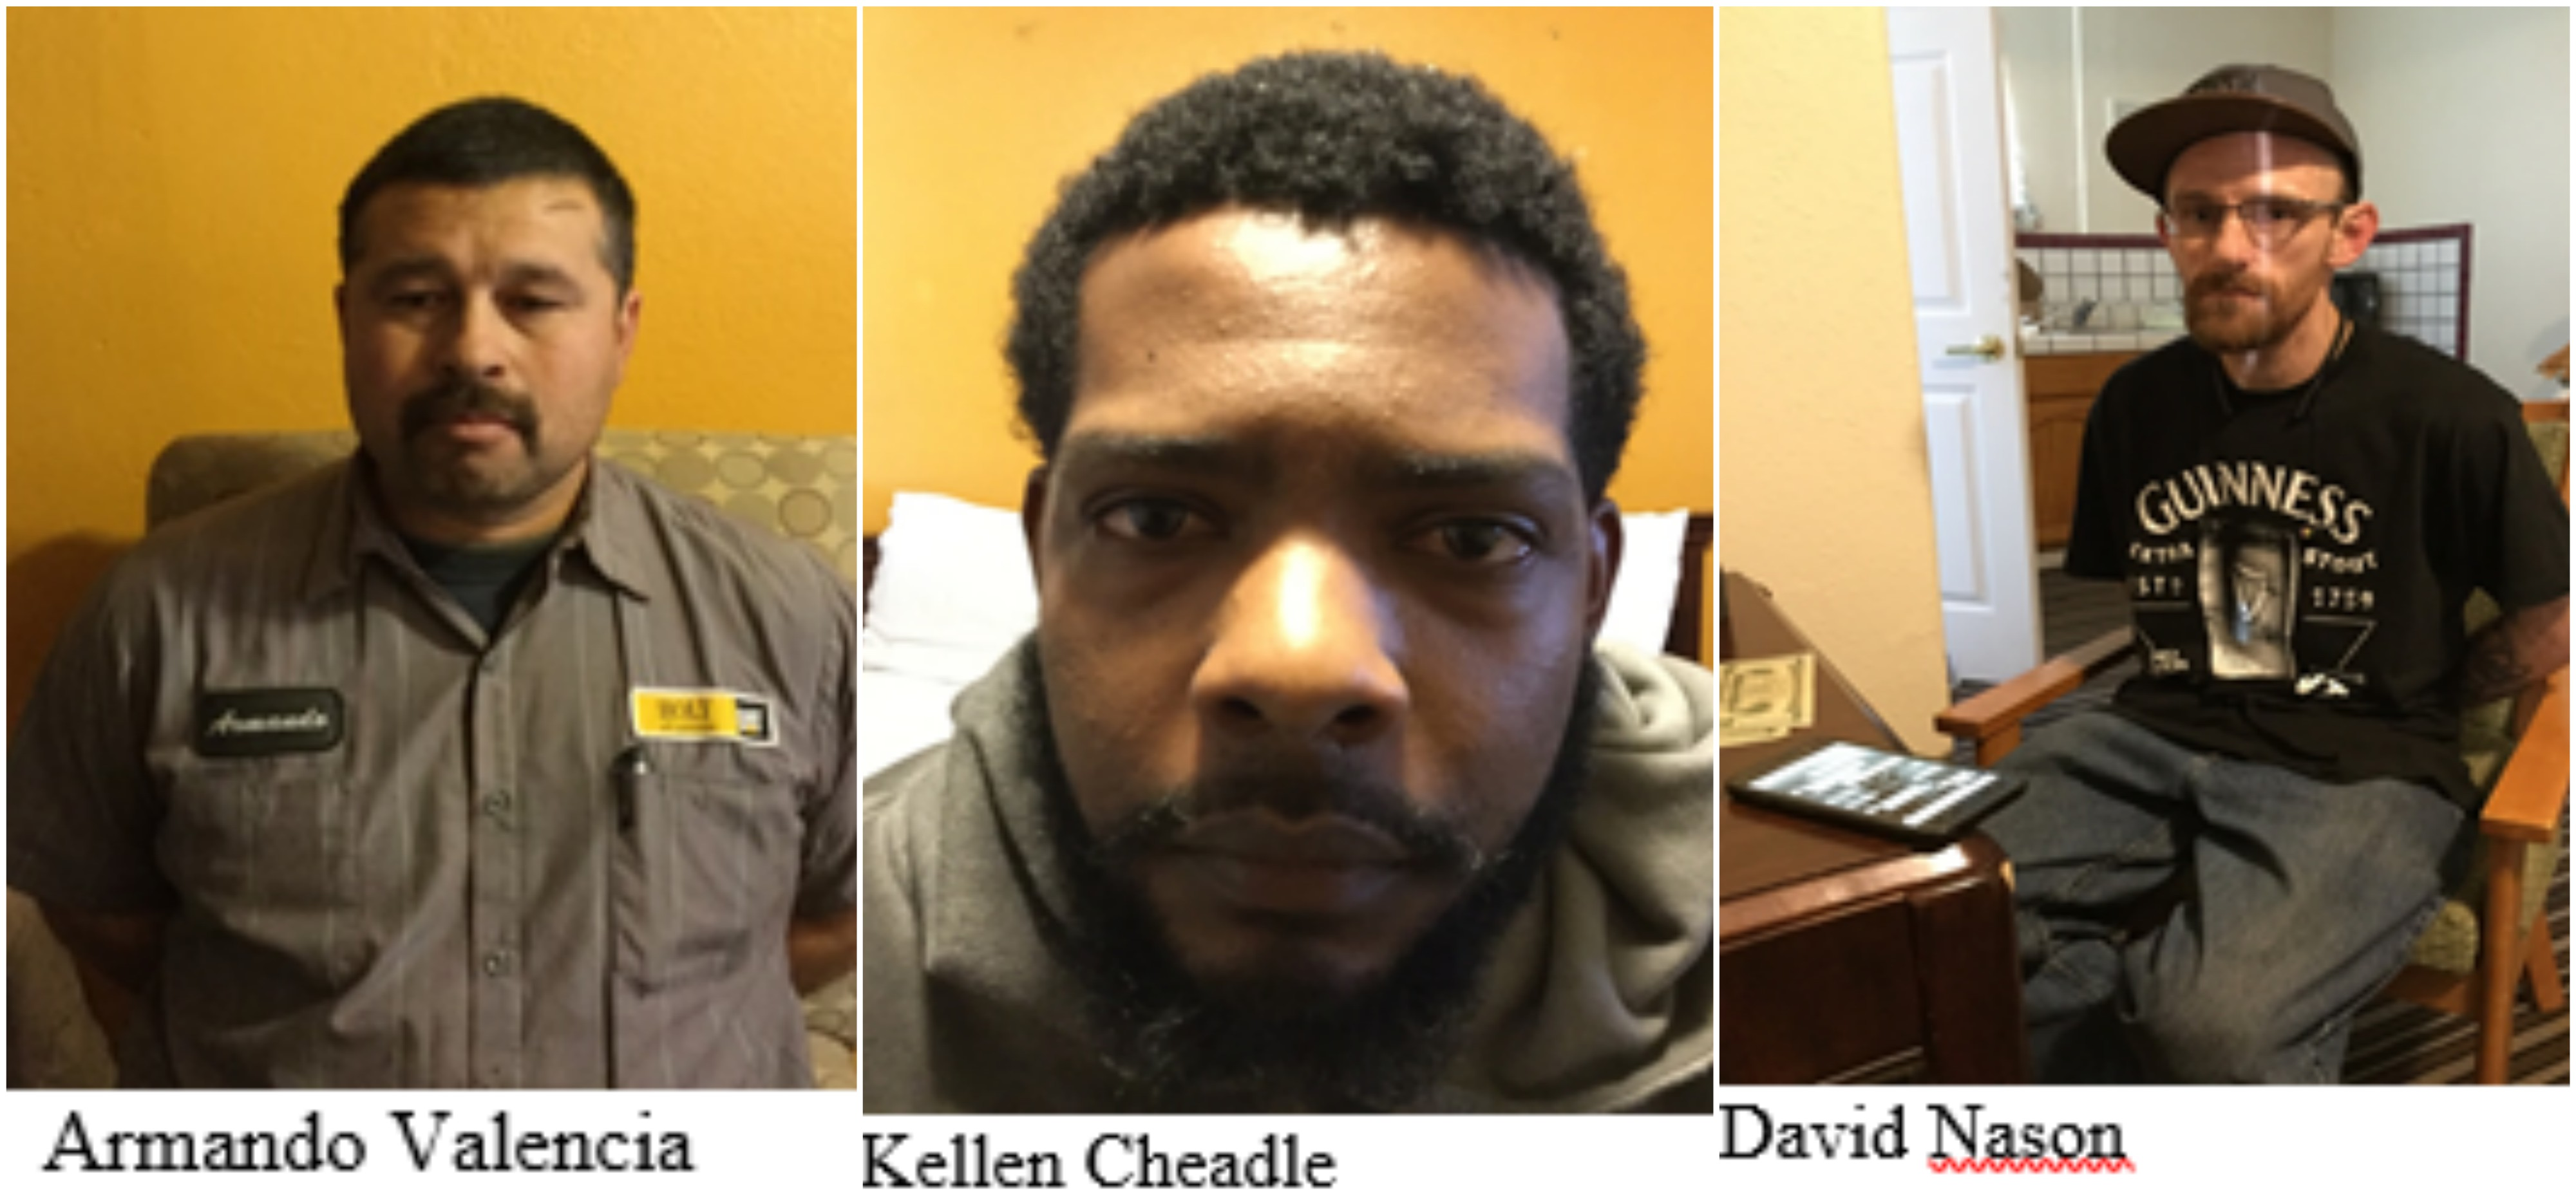 The Merced Police Department has announced that it made several arrests during a 3-day-long human trafficking operation. (Left to Right: Armando Valencia, Kellen Cheadle, David Nason.)